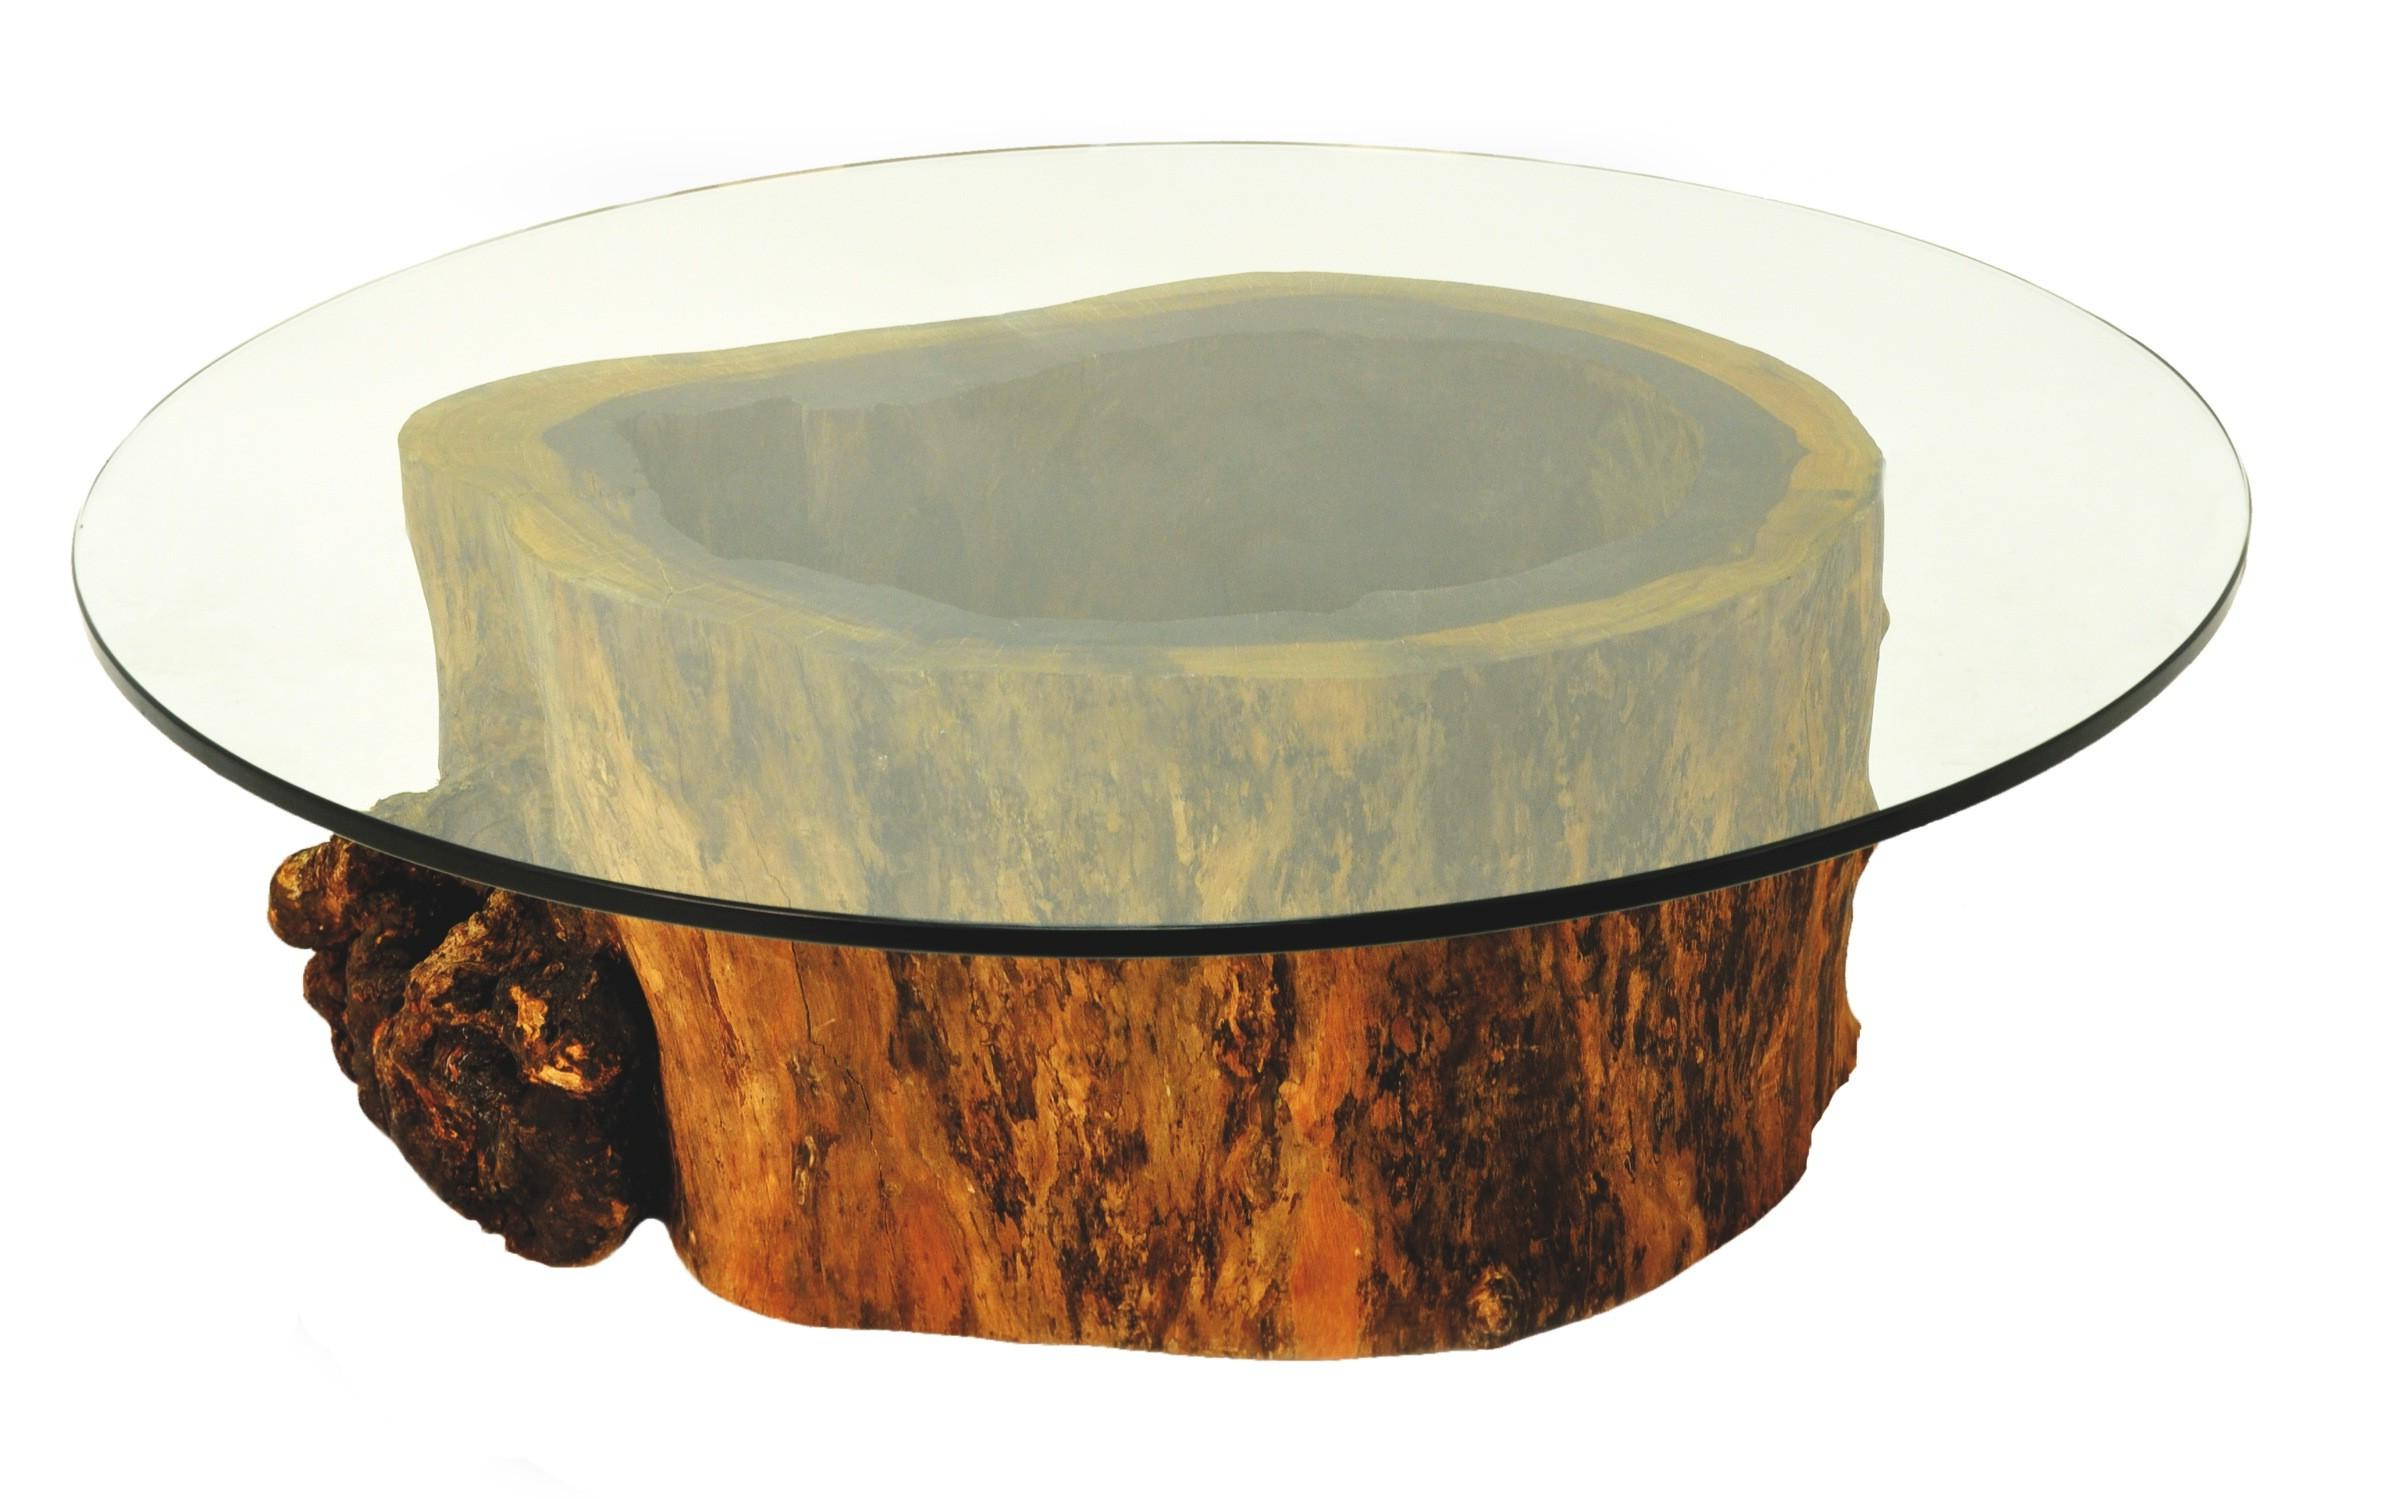 Round Glass Top Coffee Table With Wood Base Designs